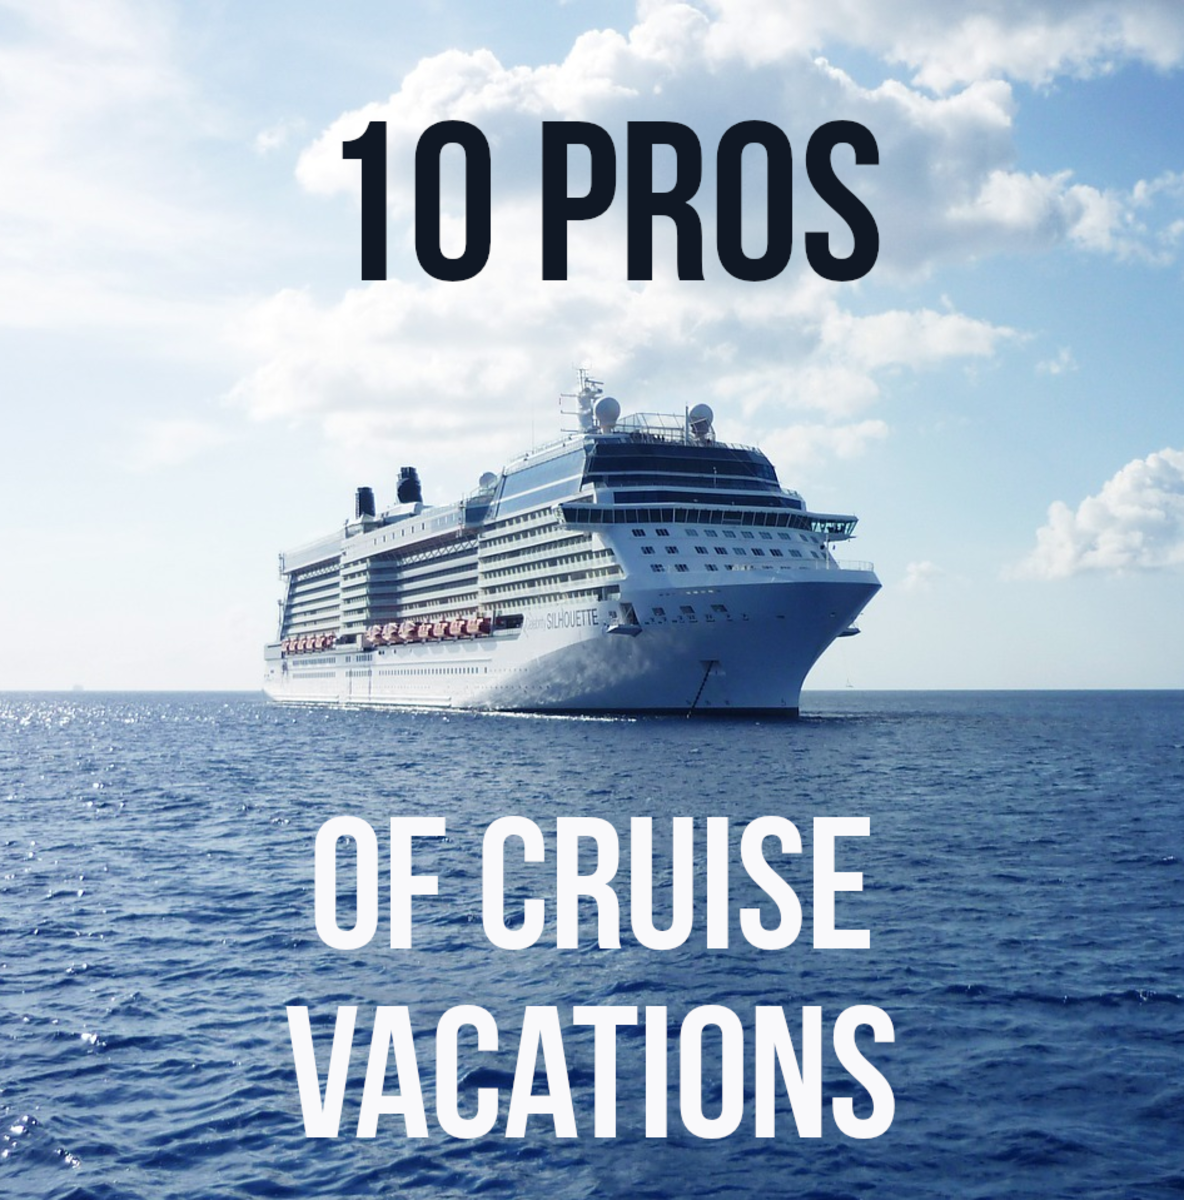 For 10 positives associated with cruise vacations, please read on...